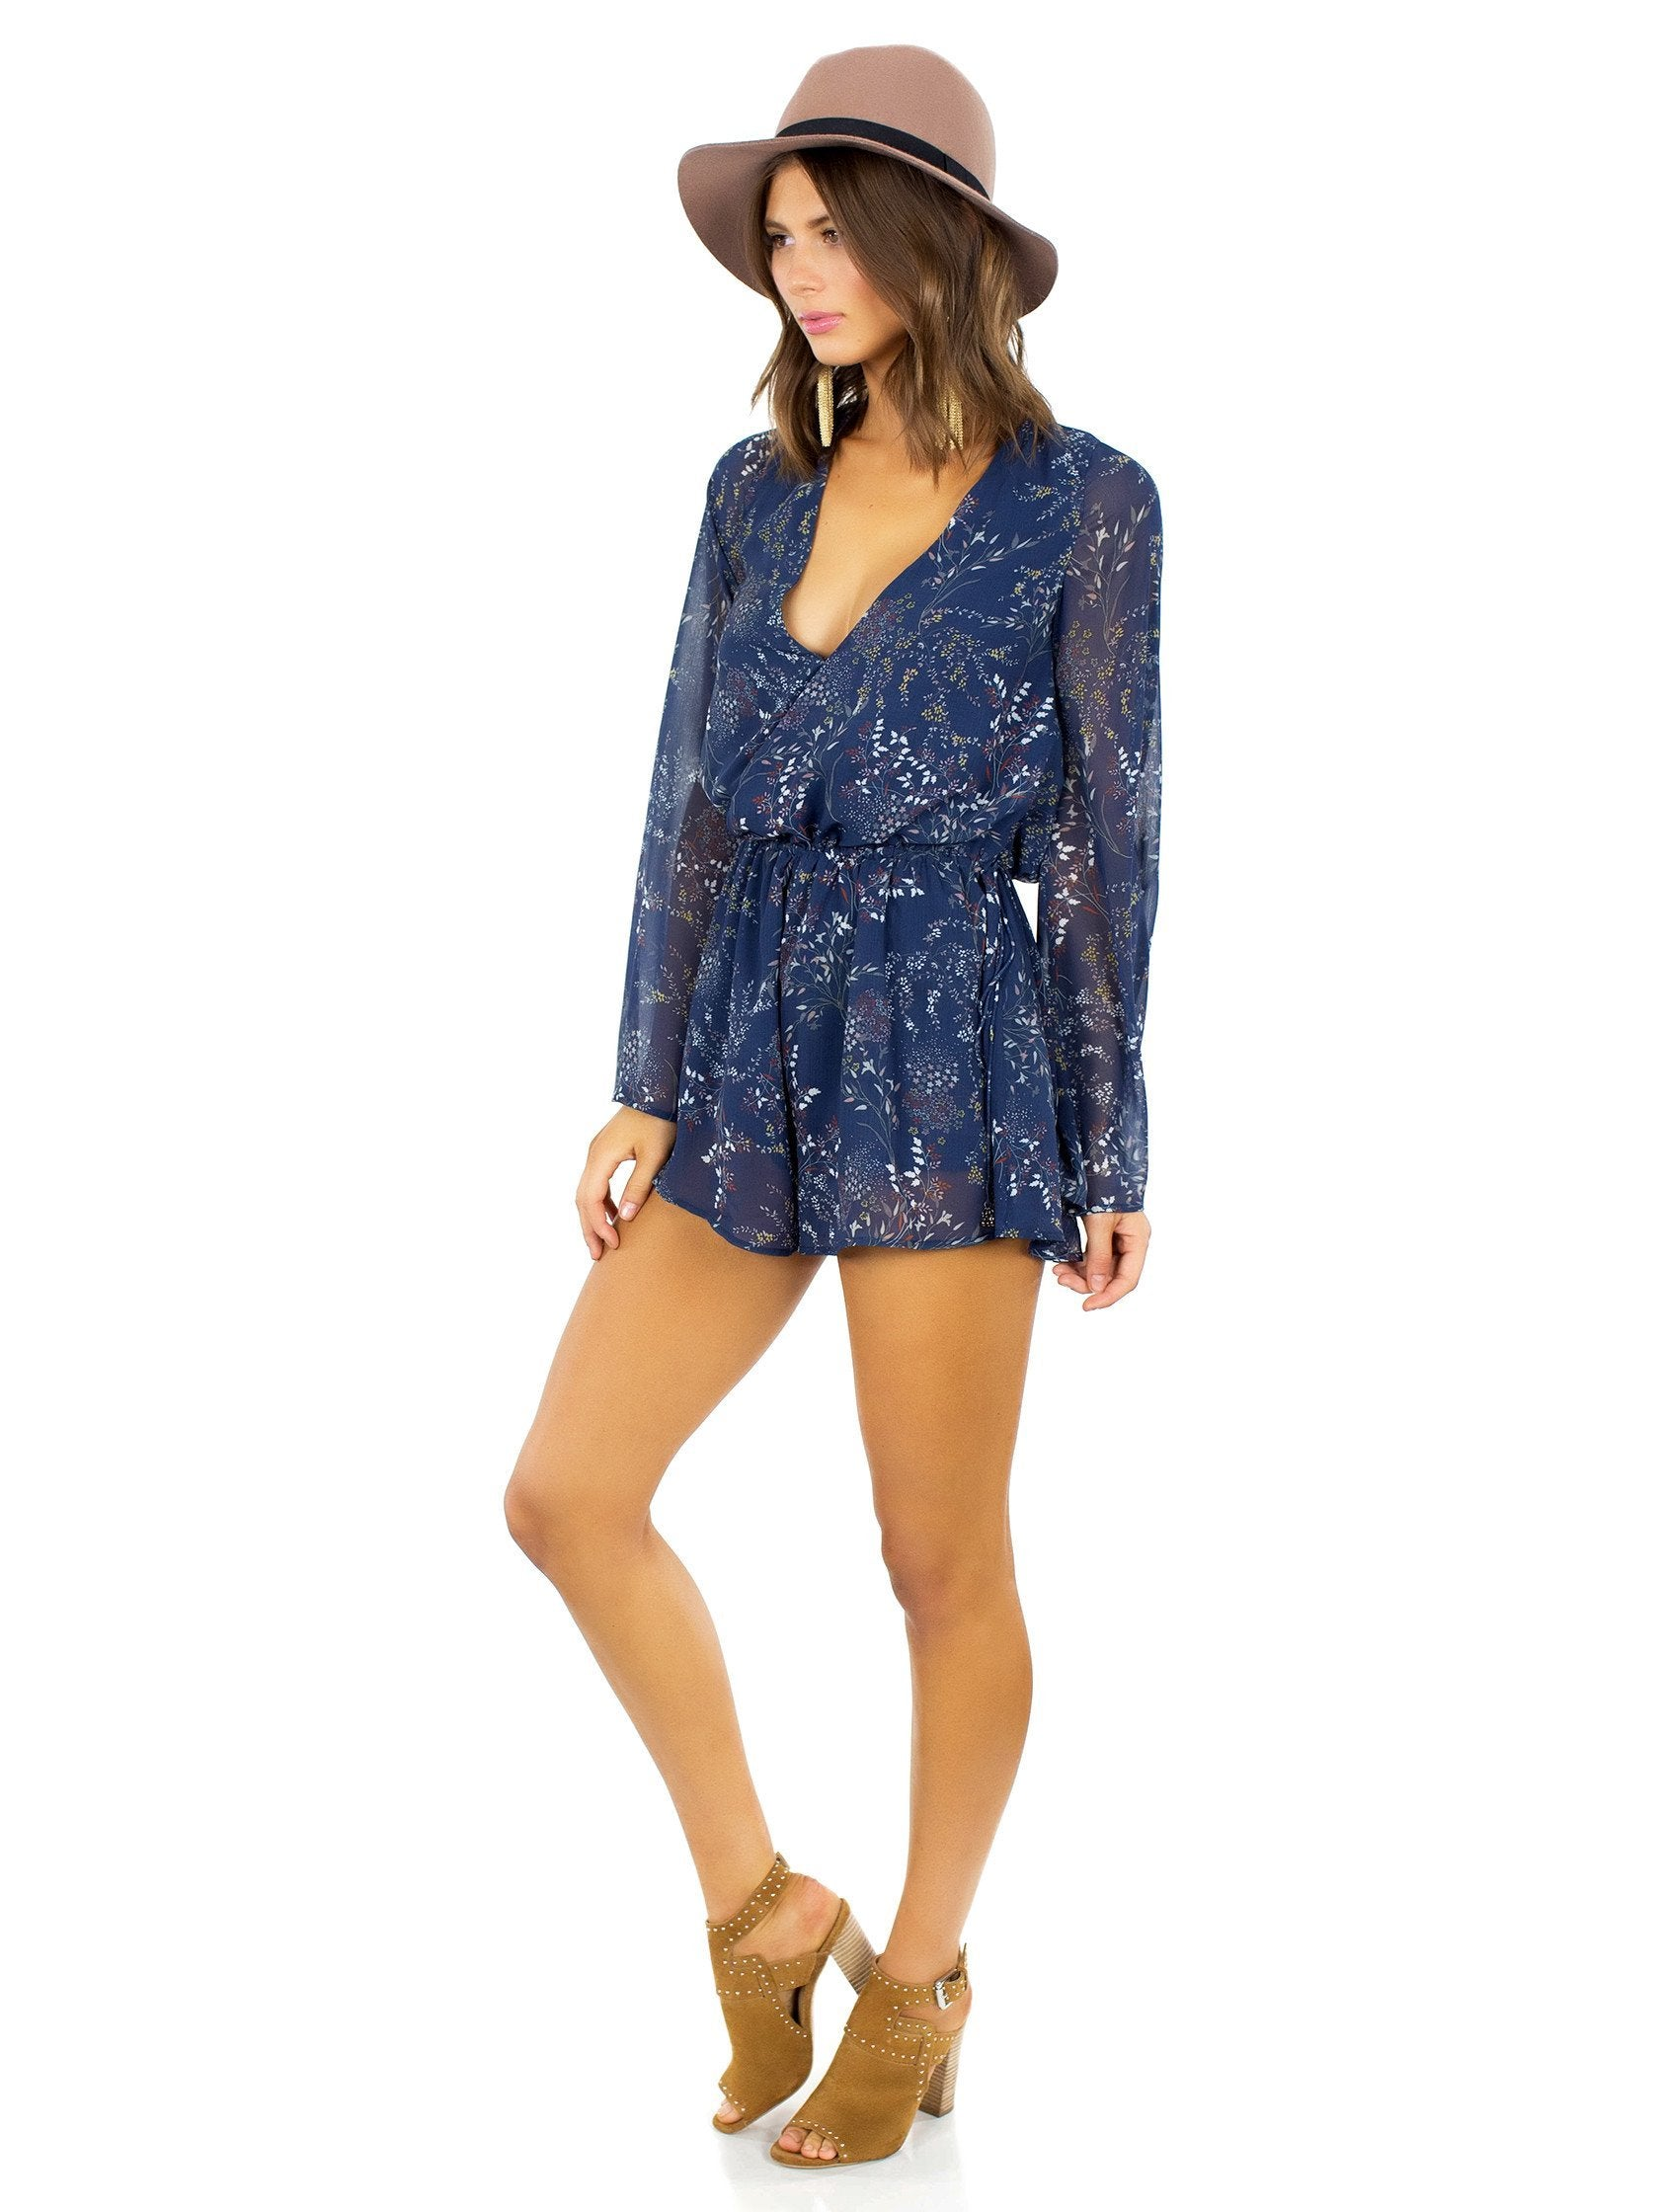 Woman wearing a romper rental from The Jetset Diaries called Mediterranean Romper